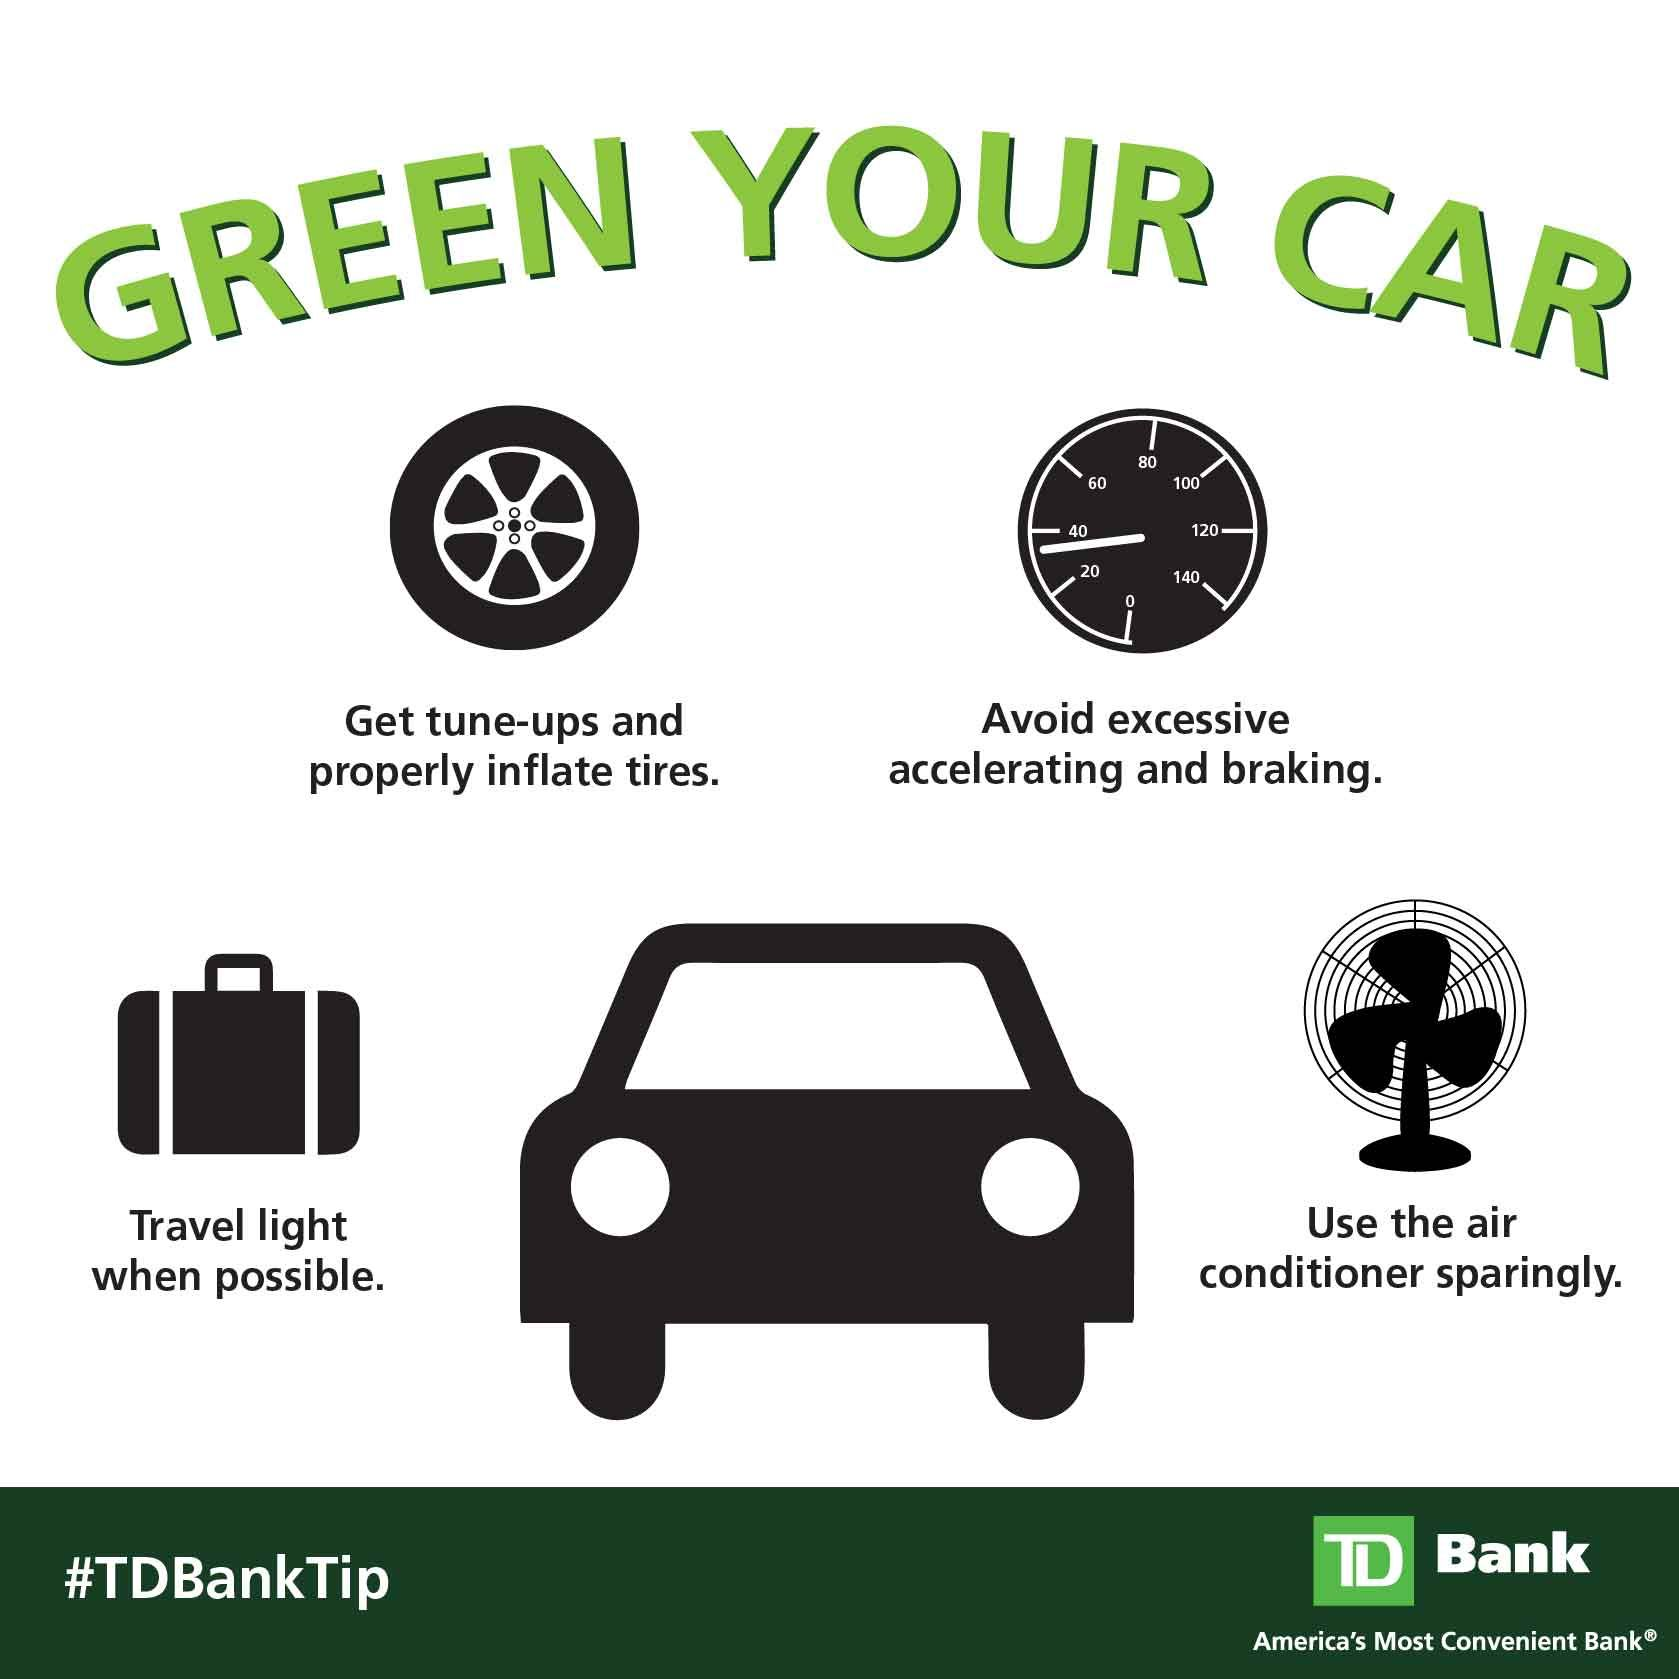 Green your car with these tips.    http://www.tdbank.com/financialeducation/greenyourlifestyle.html?cm_sp=b000-00-236